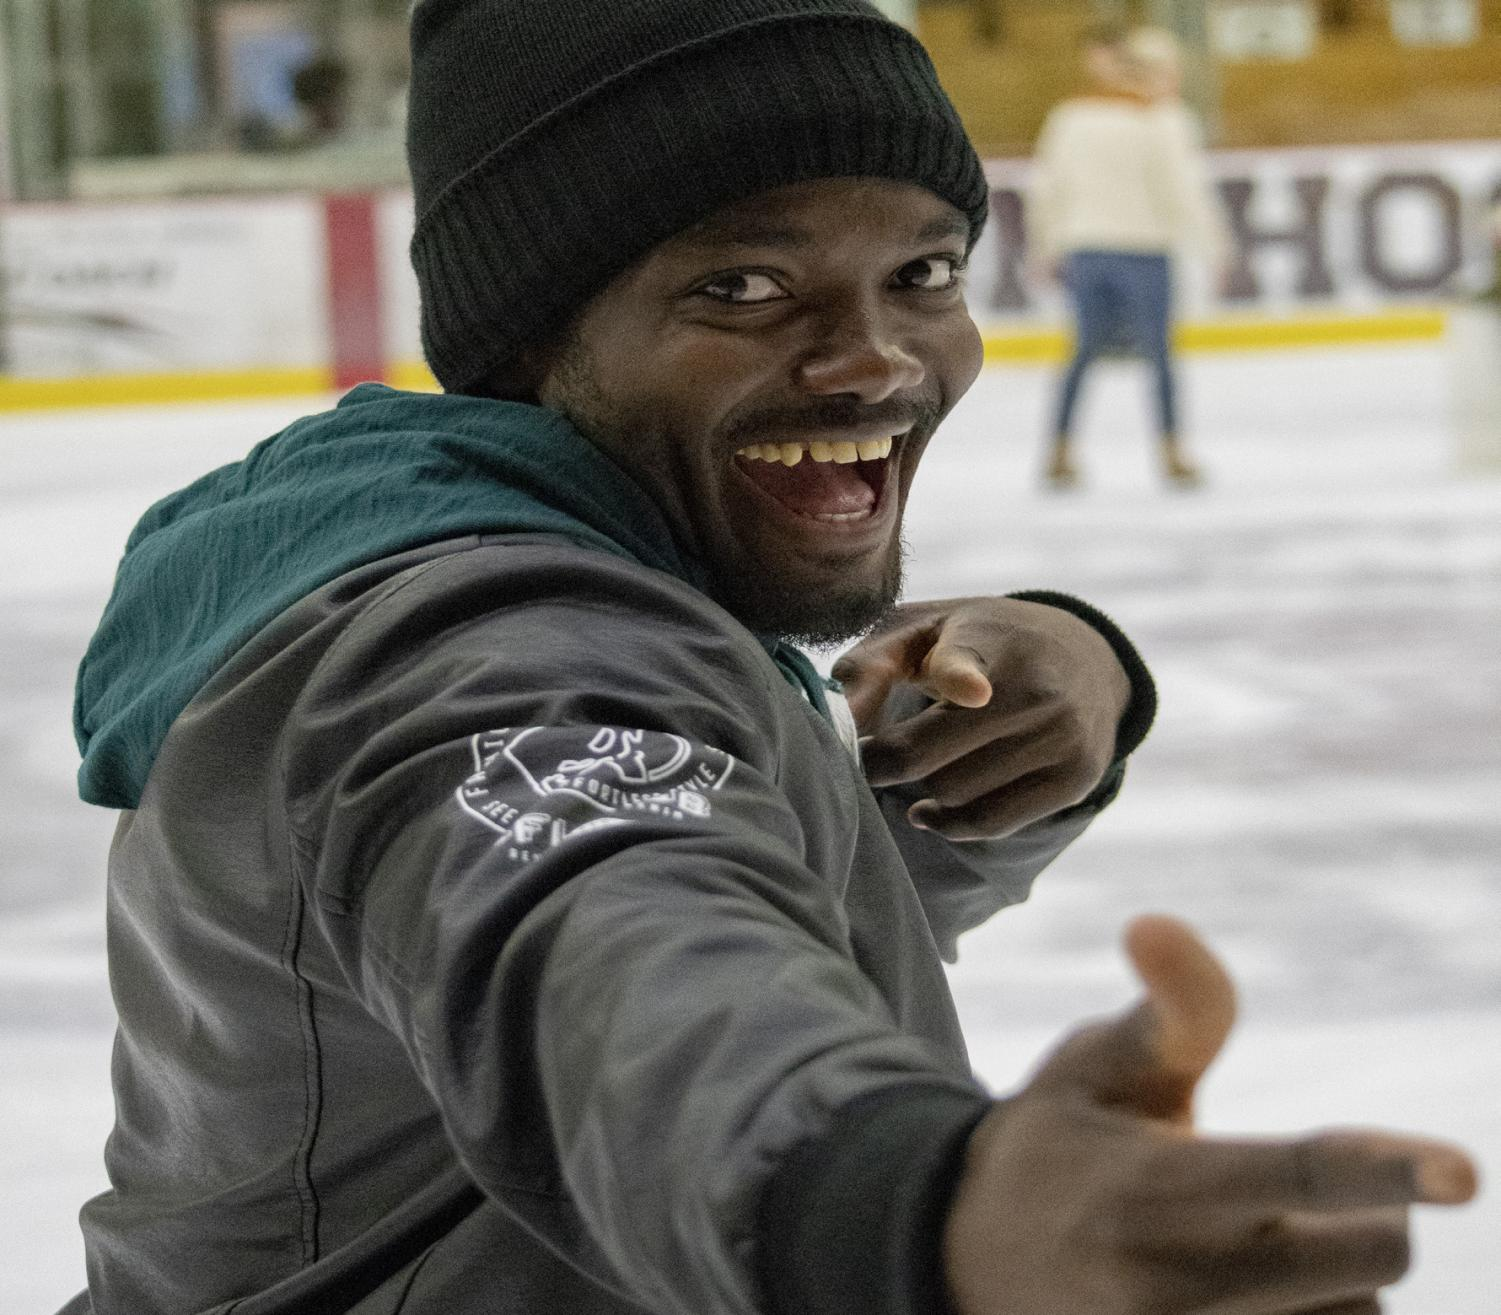 Clifford Adodo Elike '20 skating. Photo by Stephen Nadler.